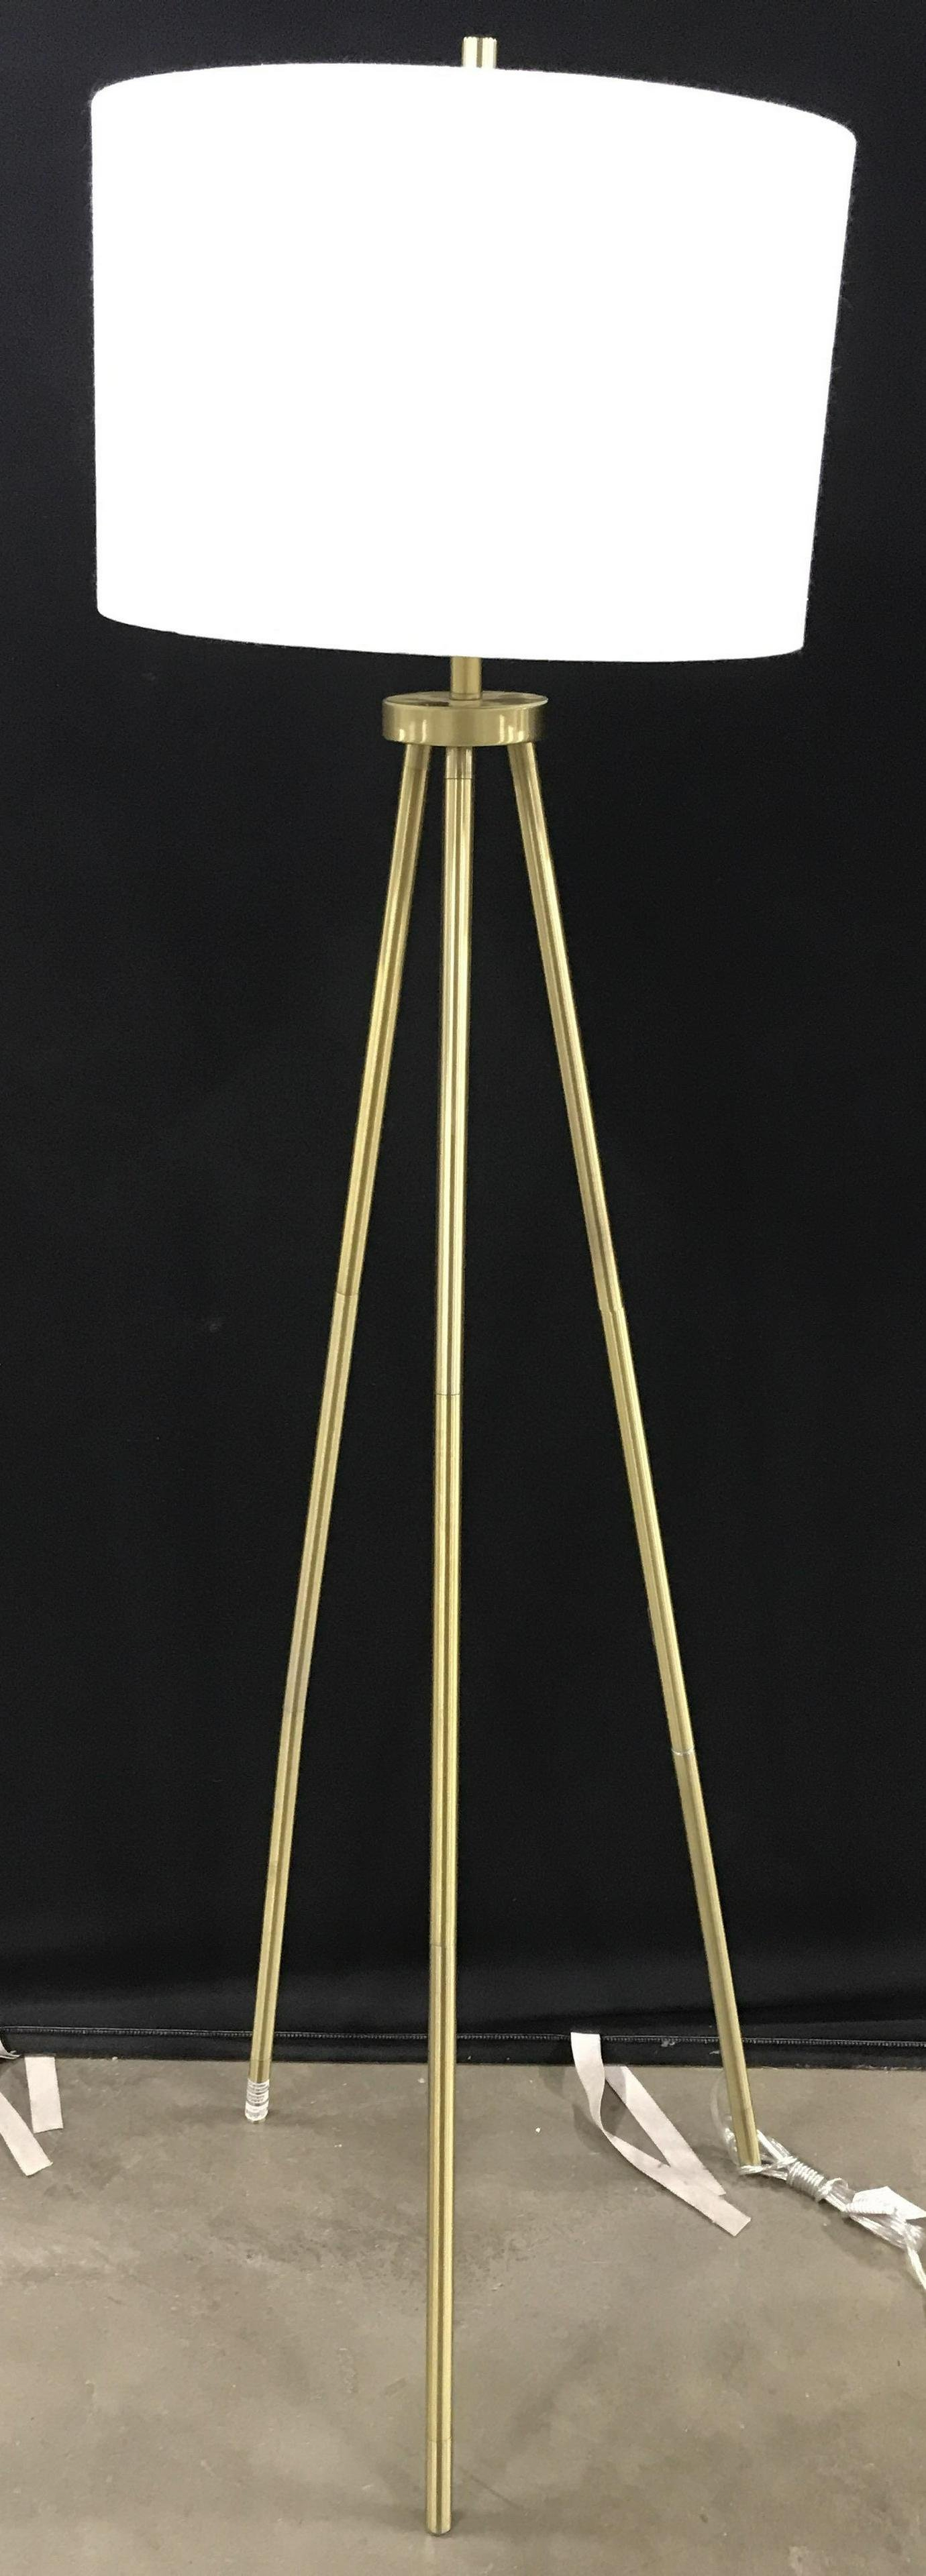 Tripod Brass Tnd Floor Lamp